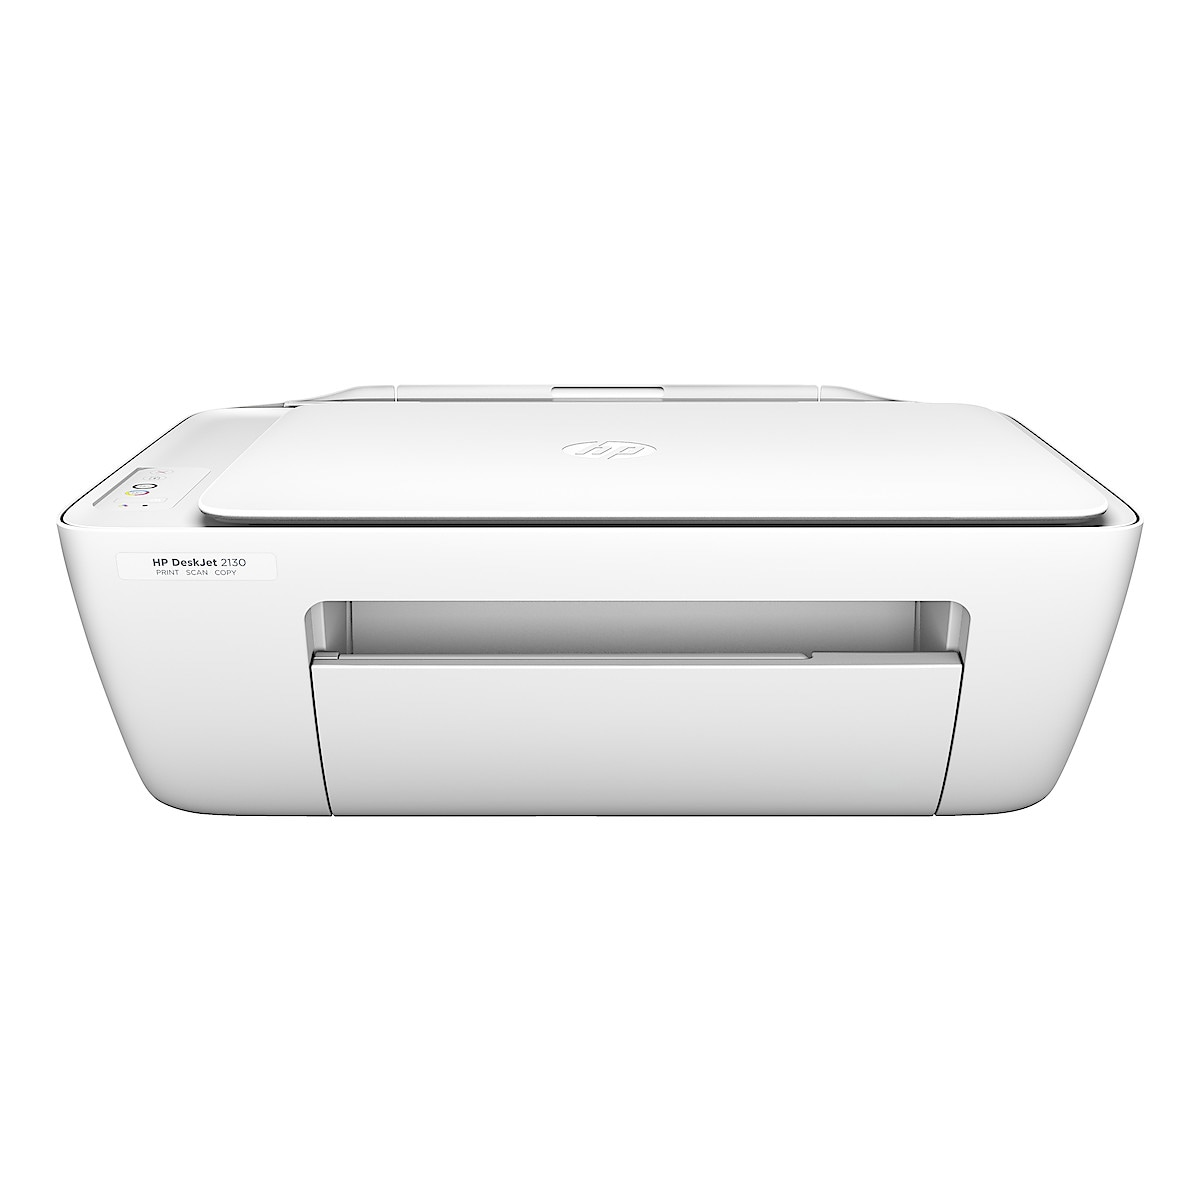 HP DeskJet 2130 AiO Inkjet Printer